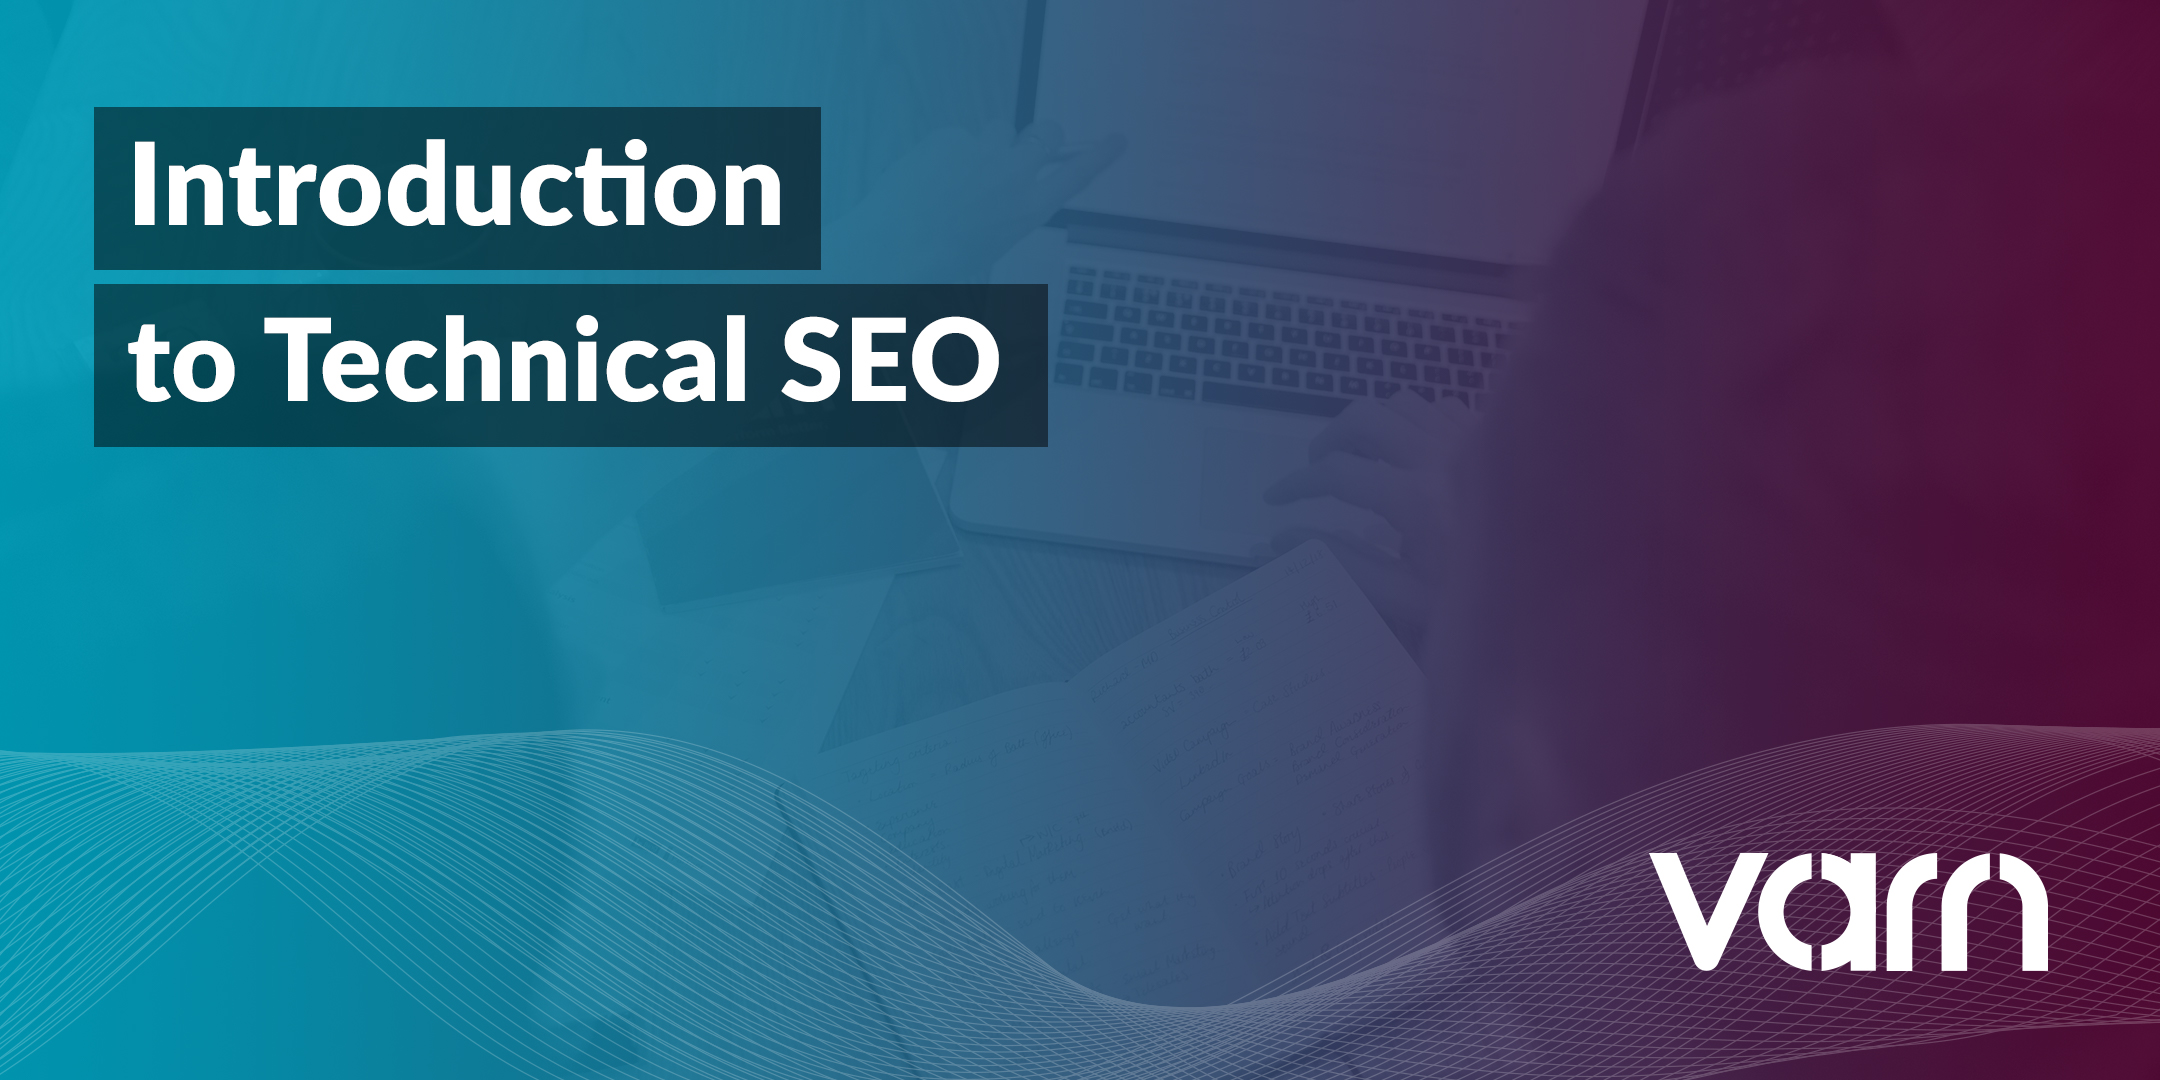 An Introduction to Technical SEO